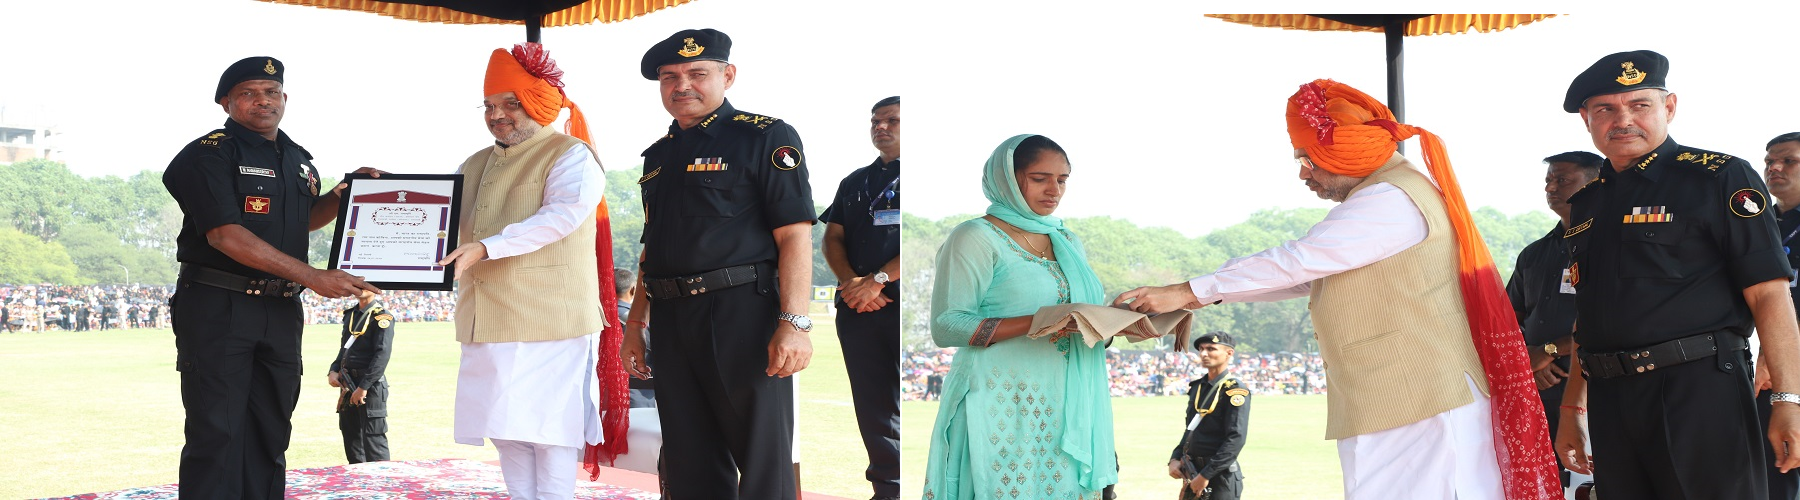 Union Minister of Home Affairs Shri Amit Shah presenting awards for gallantry at NSG Raising Day celebrations in Manesar, Haryana on October 15, 2019. DG, NSG Shri S S Deshwal is also seen